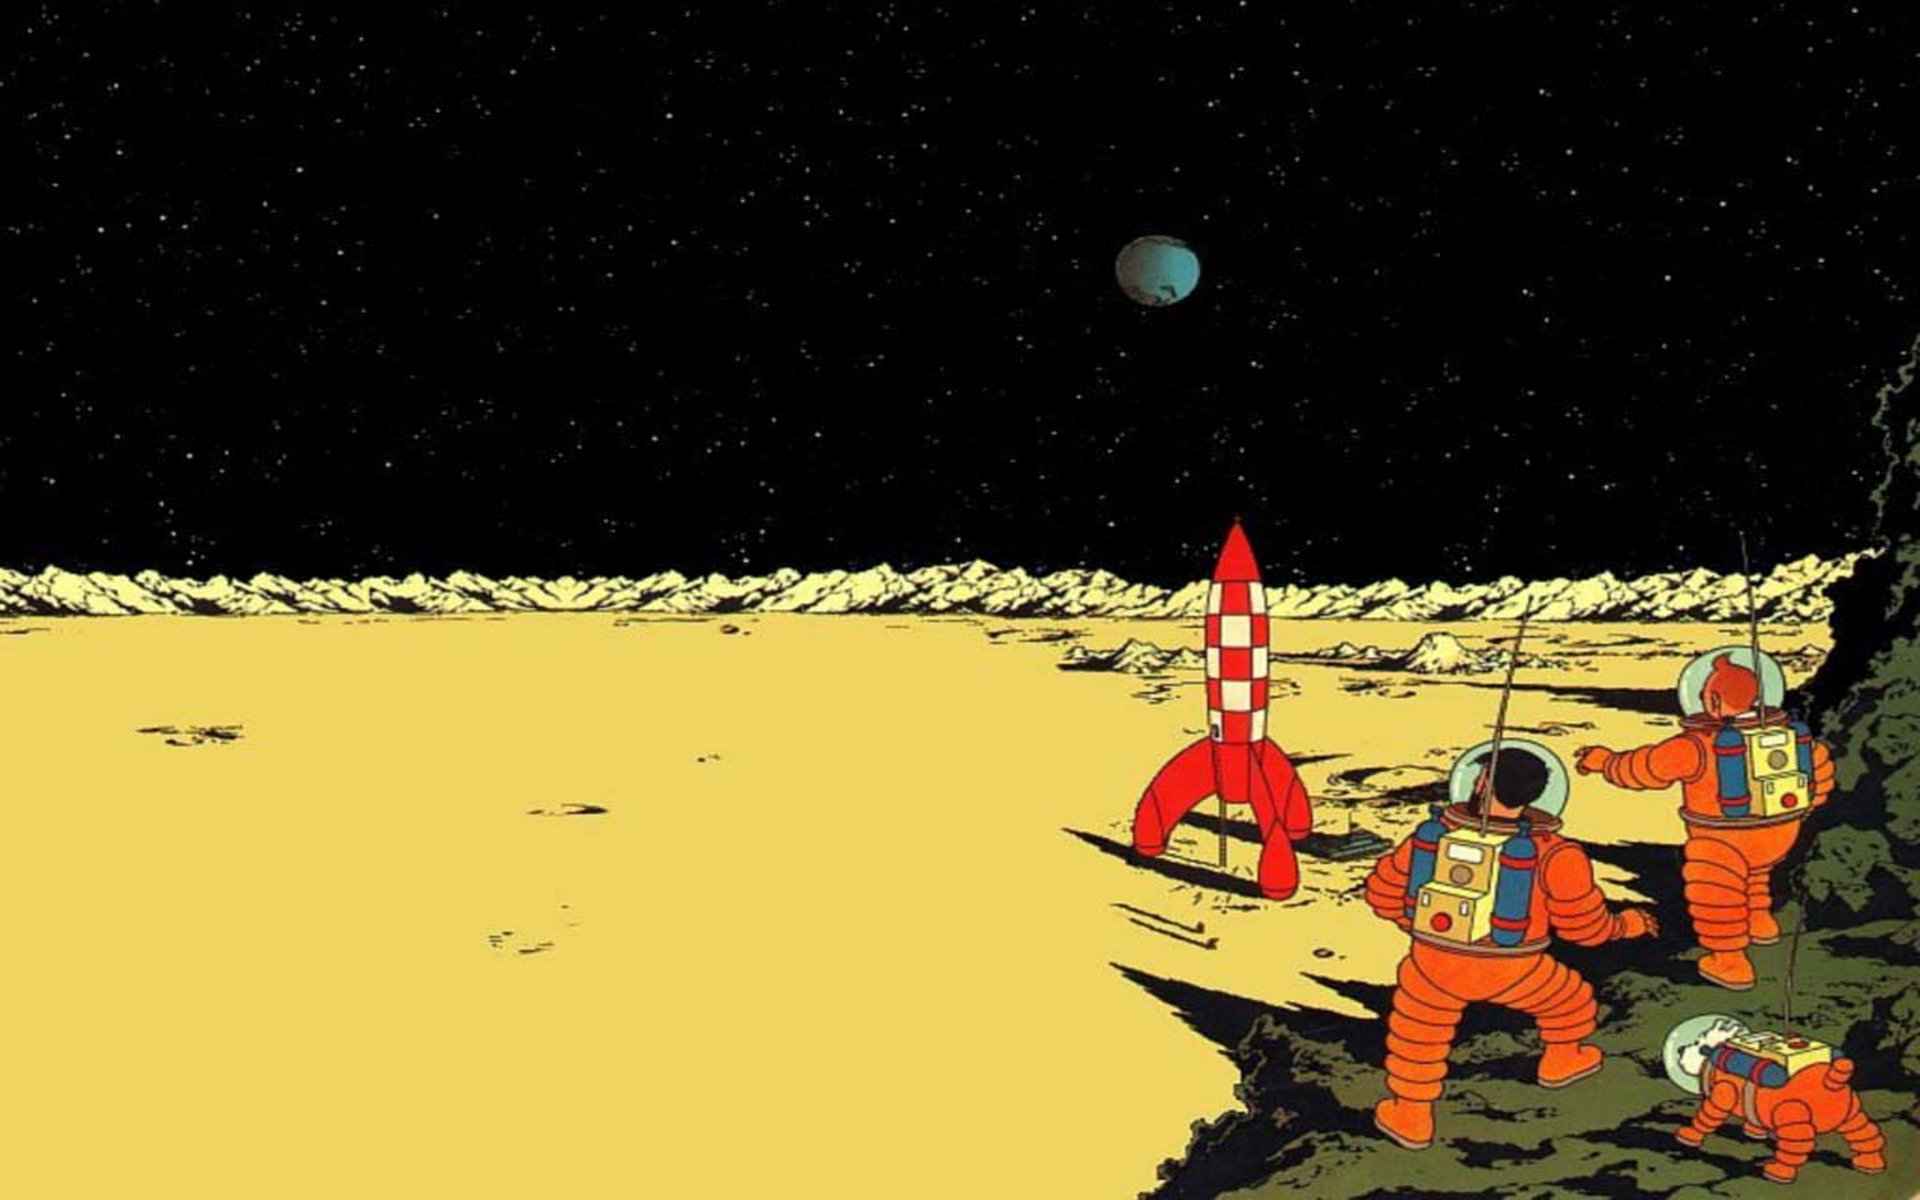 Tintin Wallpaper 33 HD Desktop Wallpapers 1920x1200